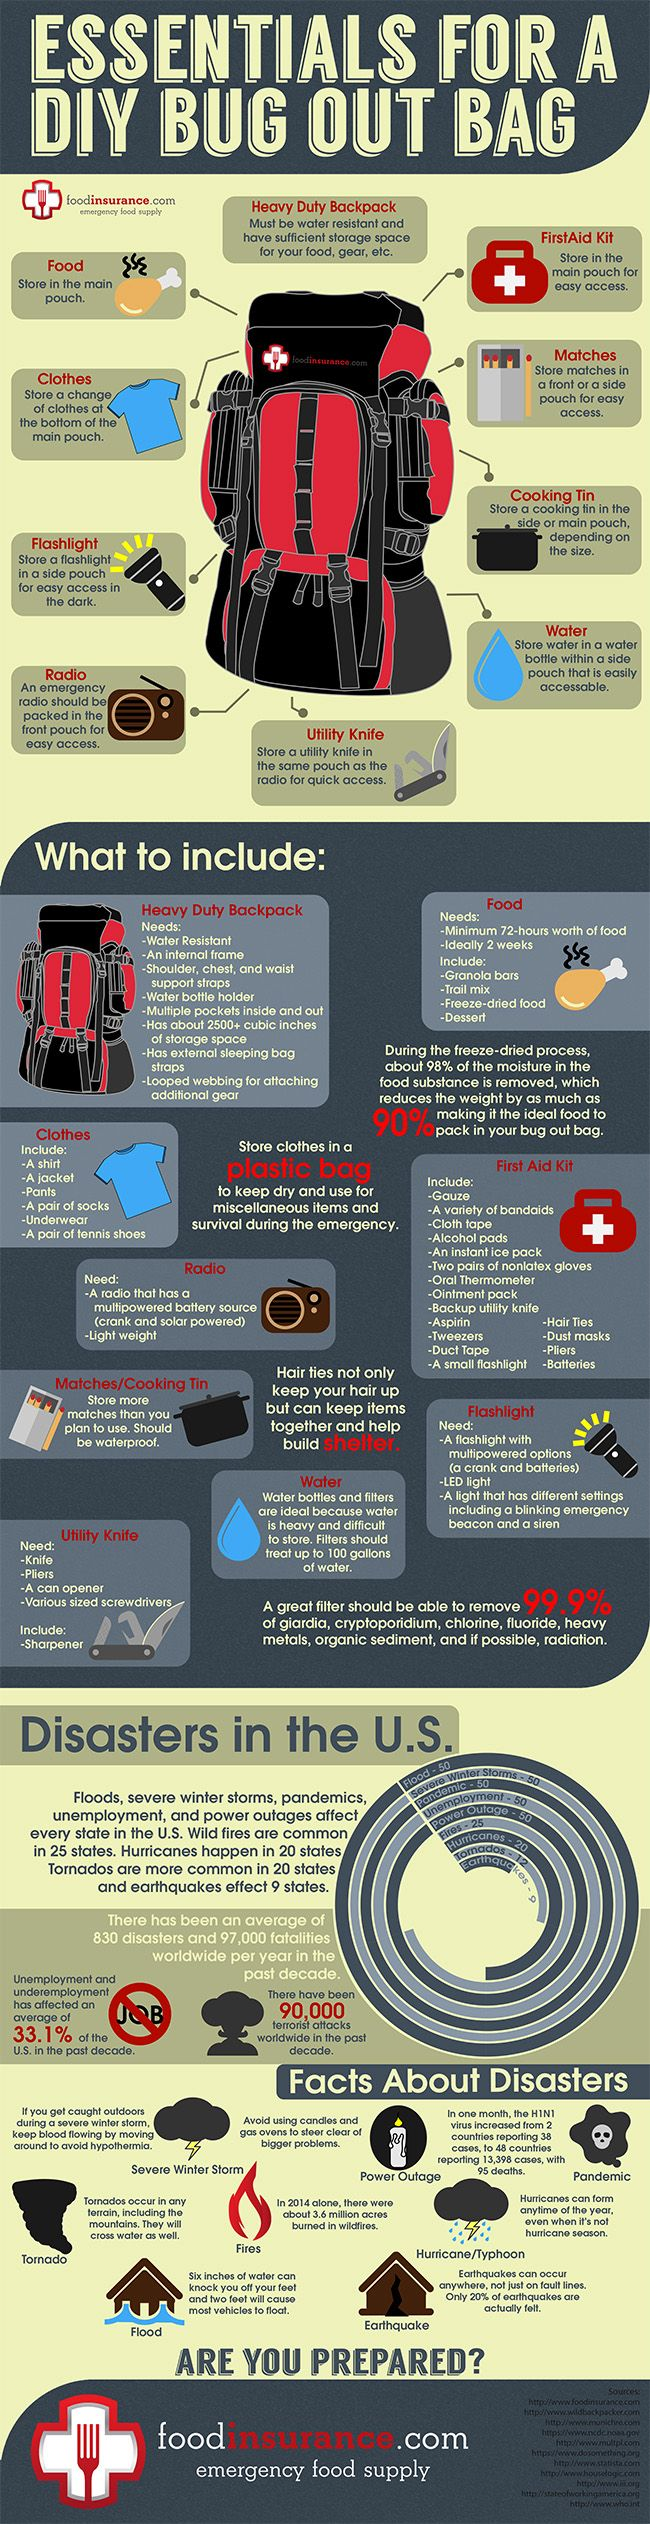 DIY Bug Out Bag Infographic | FoodInsurance.com                                                                                                                                                                                 More